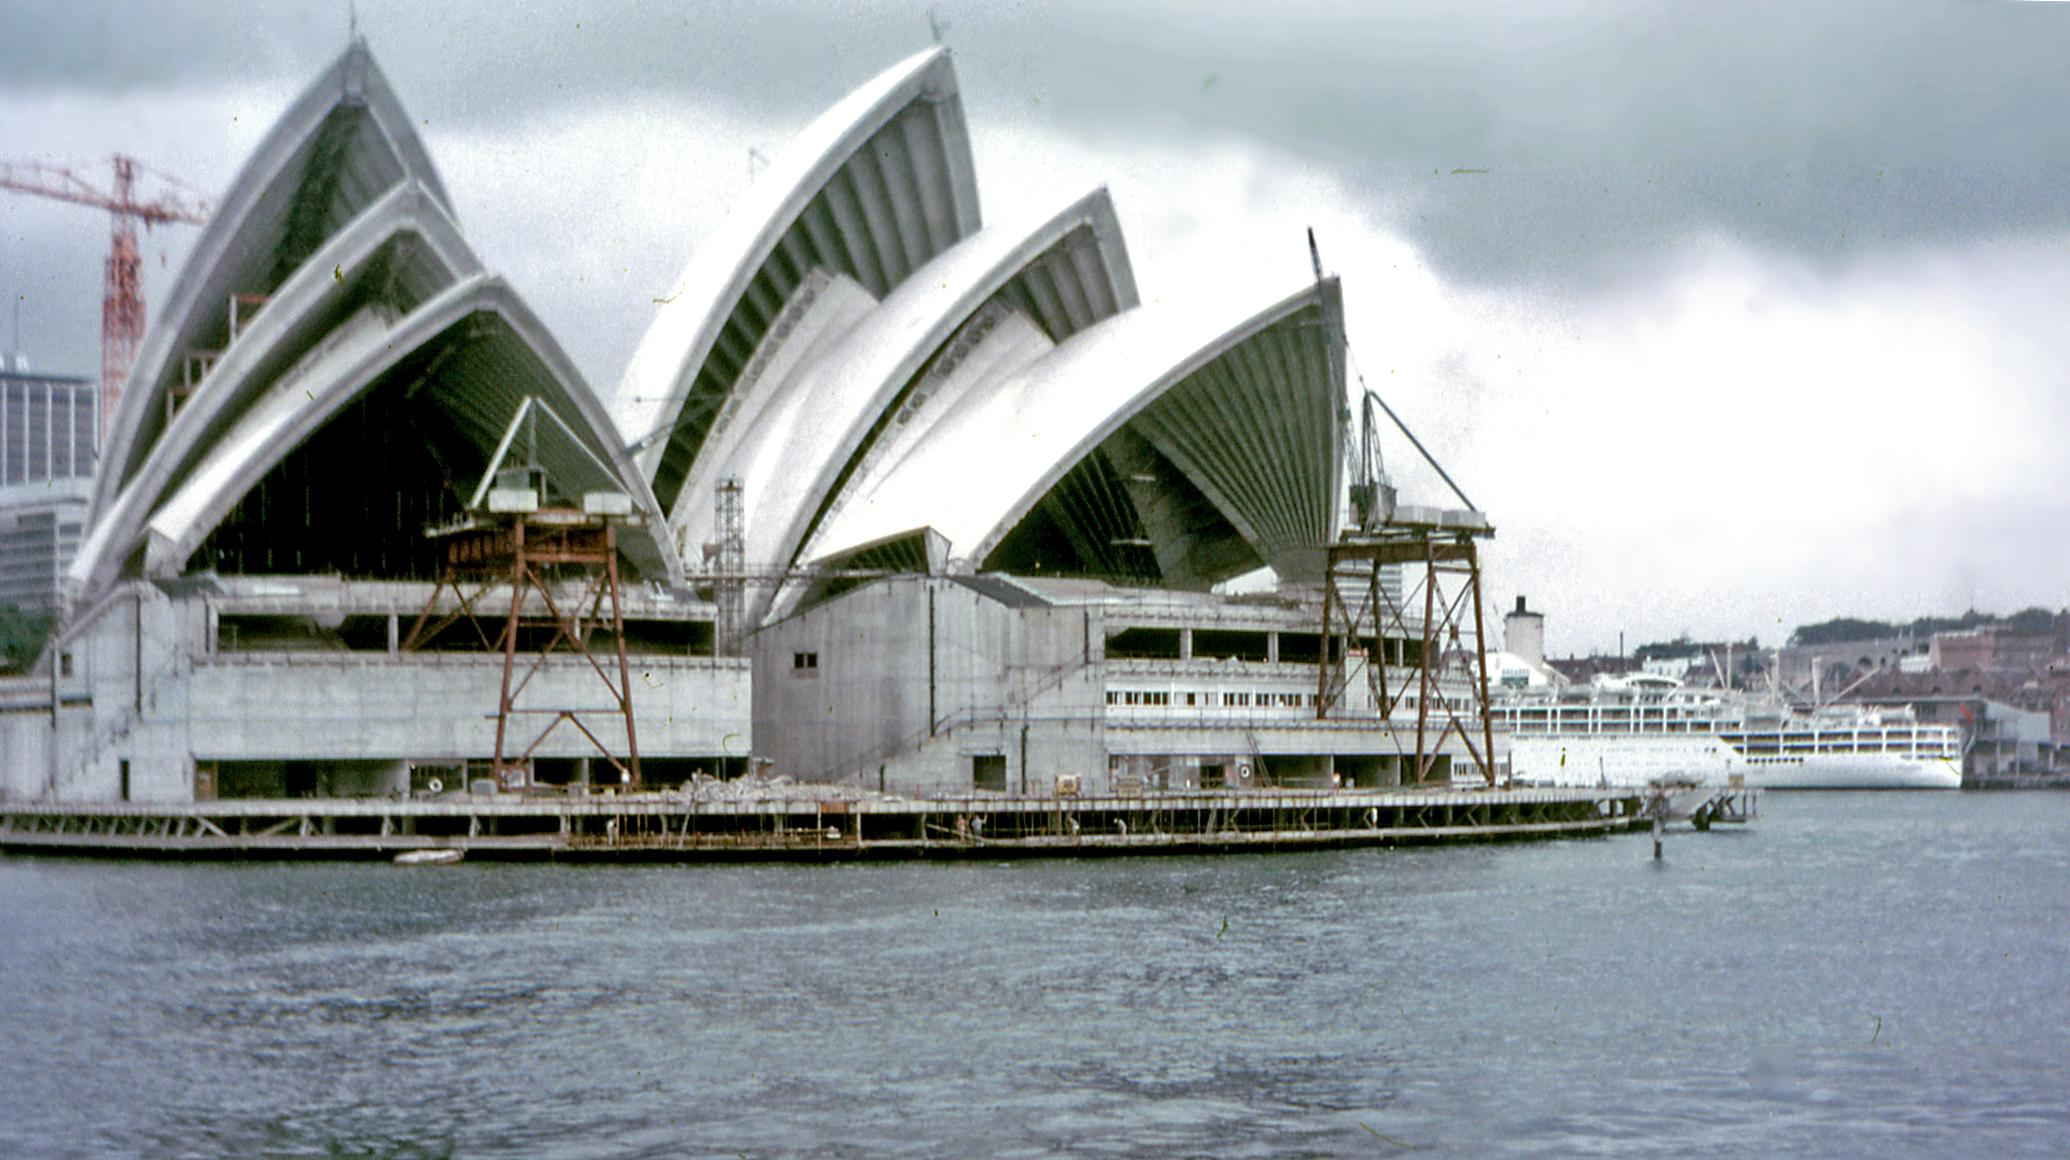 Sydney opera house designing buildings wiki for Top architecture firms sydney